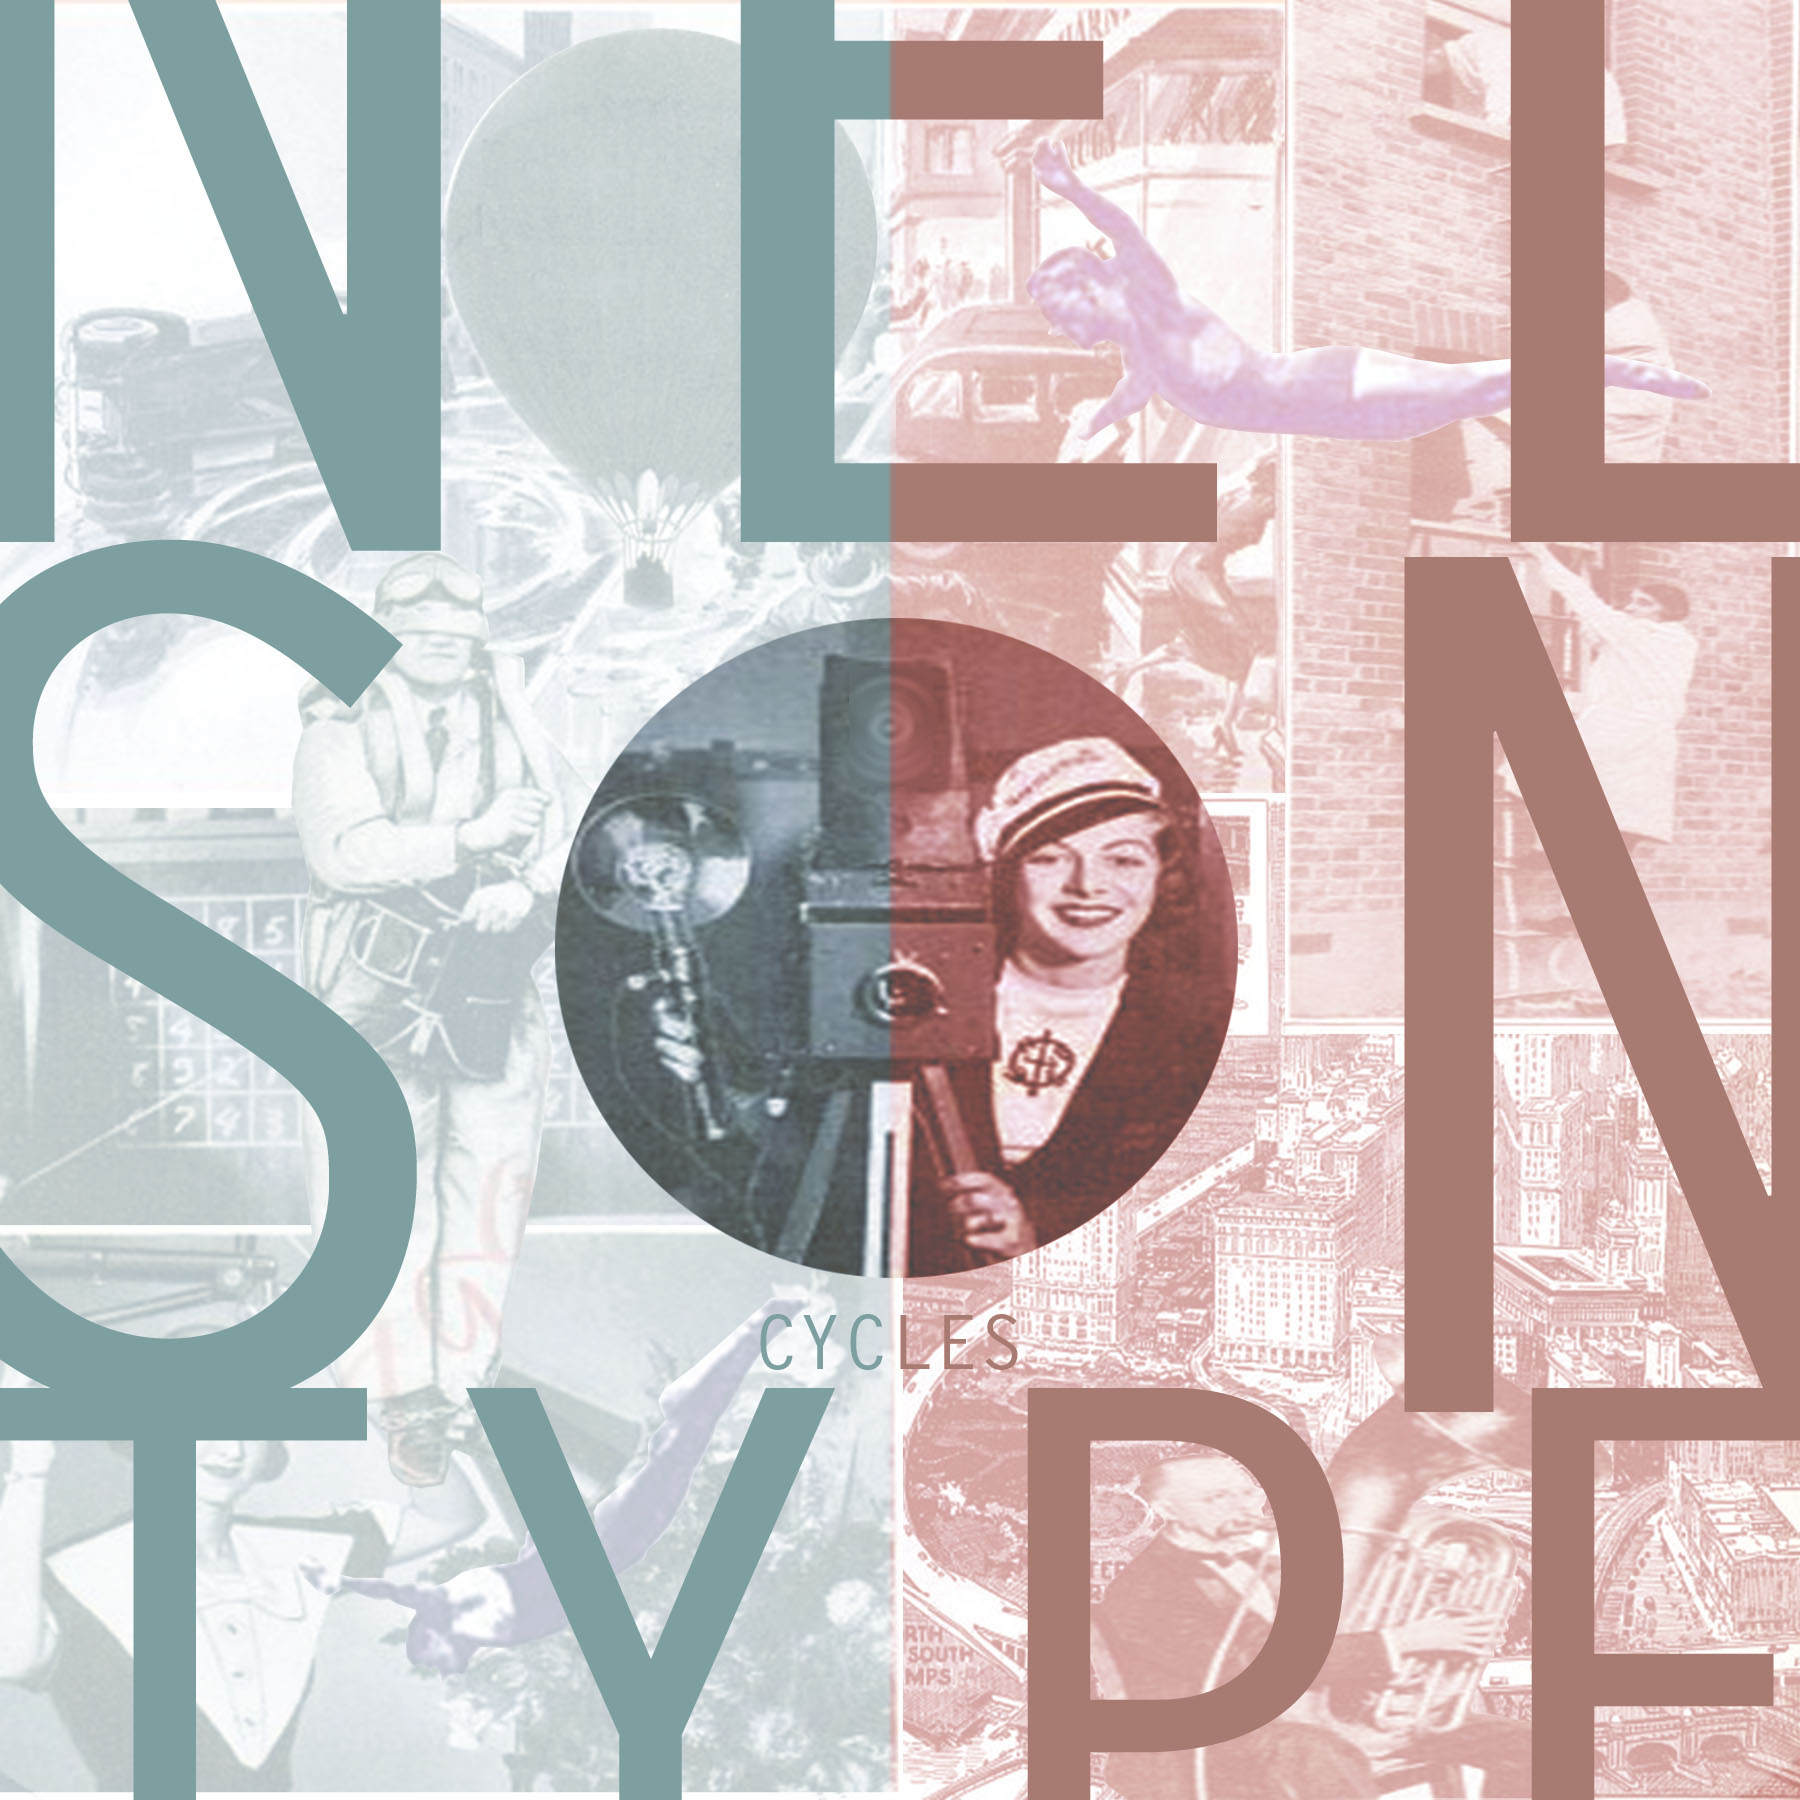 Nelson-Type – Cycles